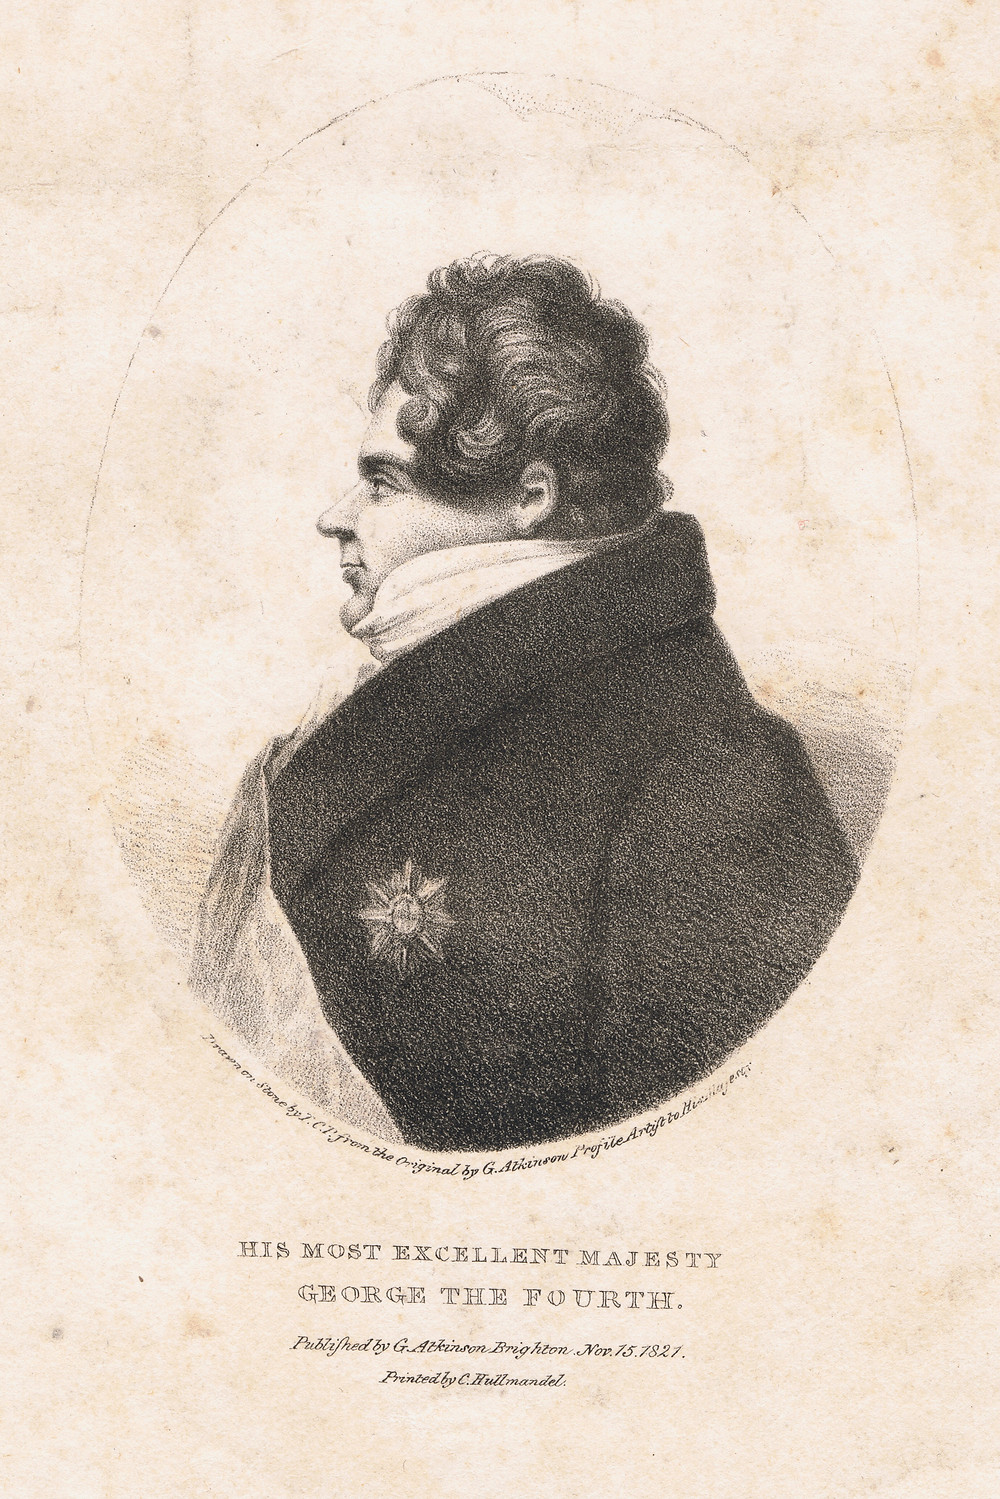 Lithograph of King George IV of Great Britain in profile, by George Atkinson, printed by C. Hullmandel, 1821.